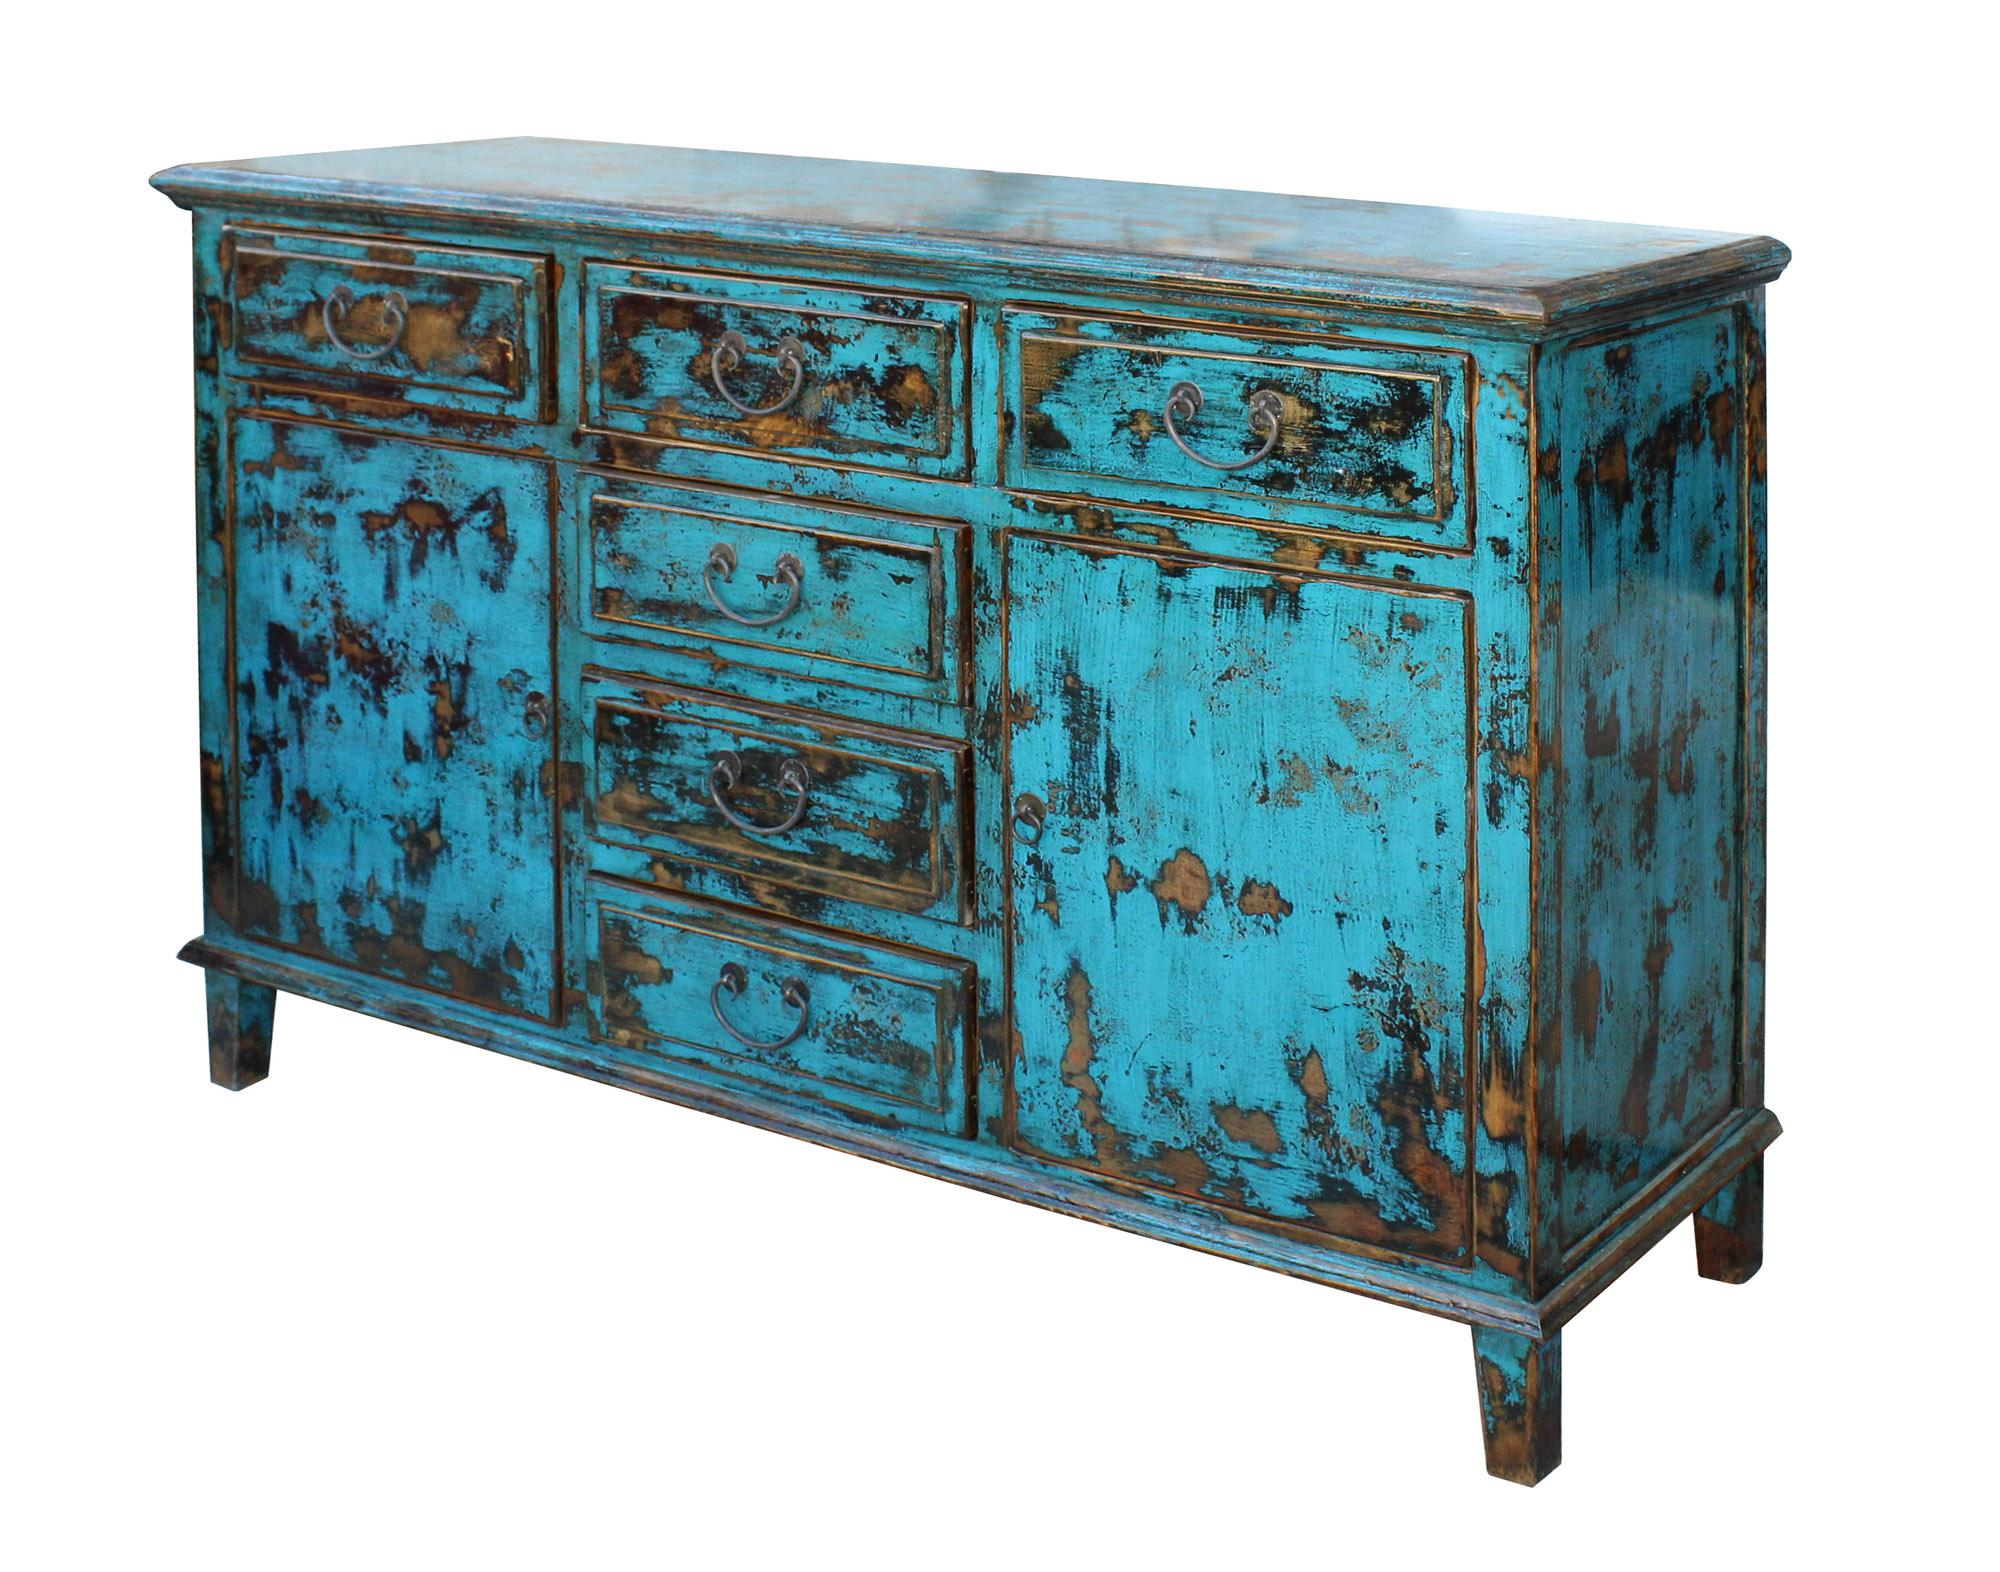 Attrayant Asian Oriental Distressed Rustic Blue Credenza Sideboard Buffet Table  Cabinet For Sale   Image 3 Of